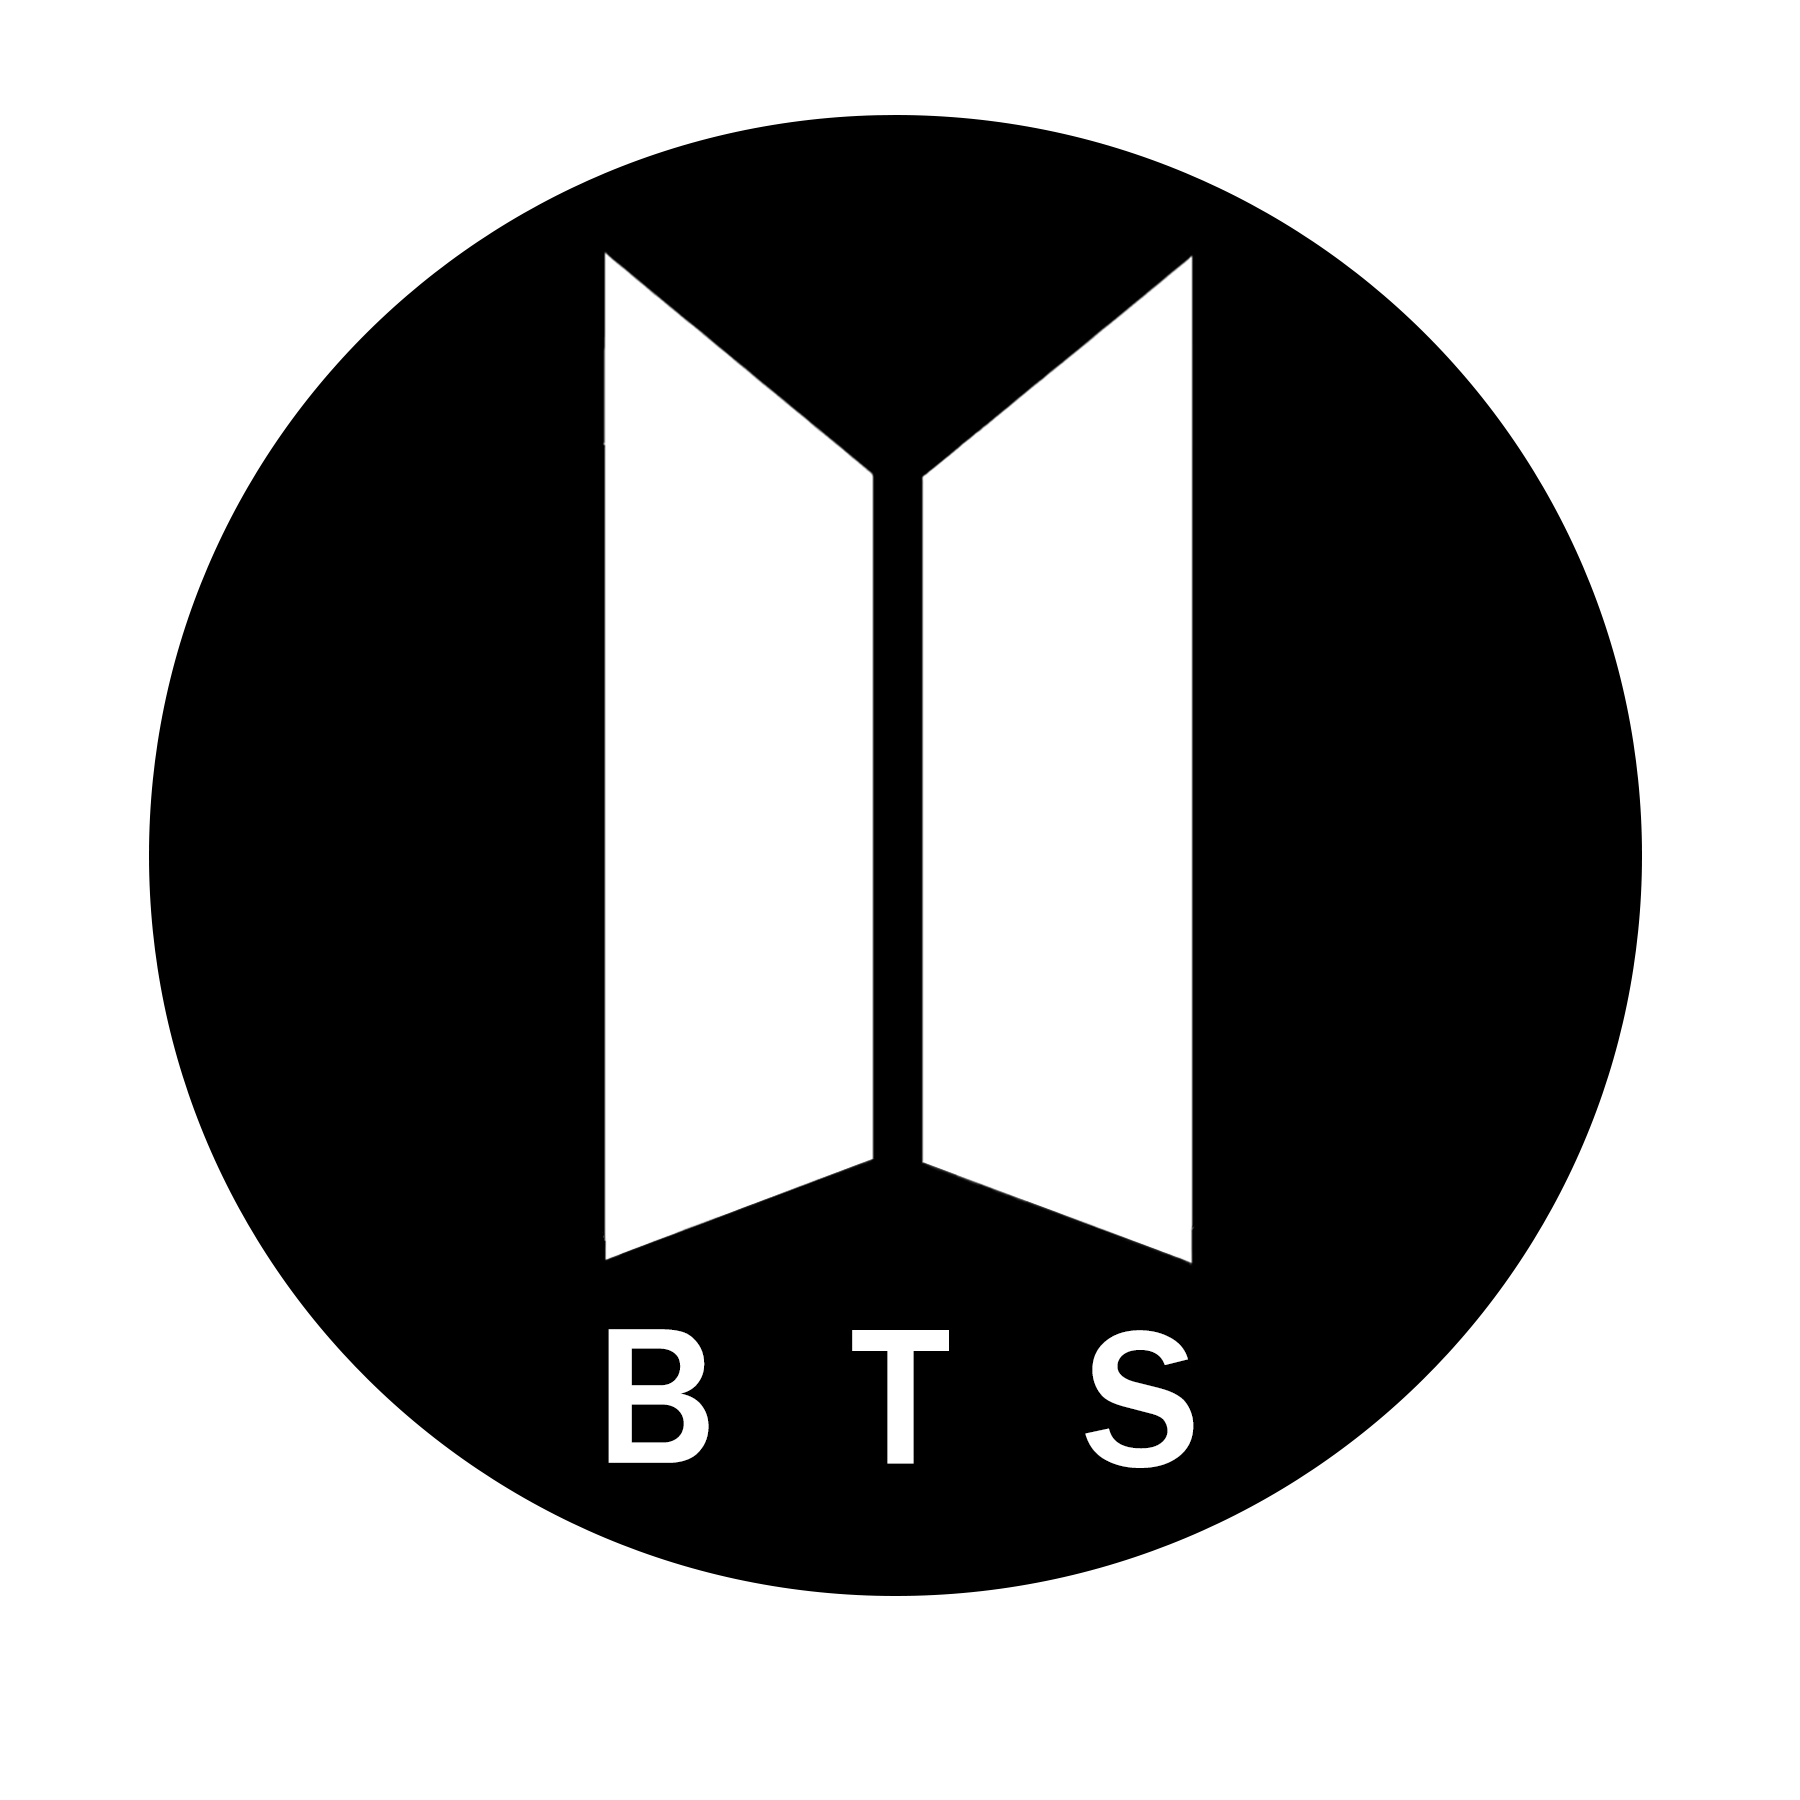 explore more awesome bts logos channel k